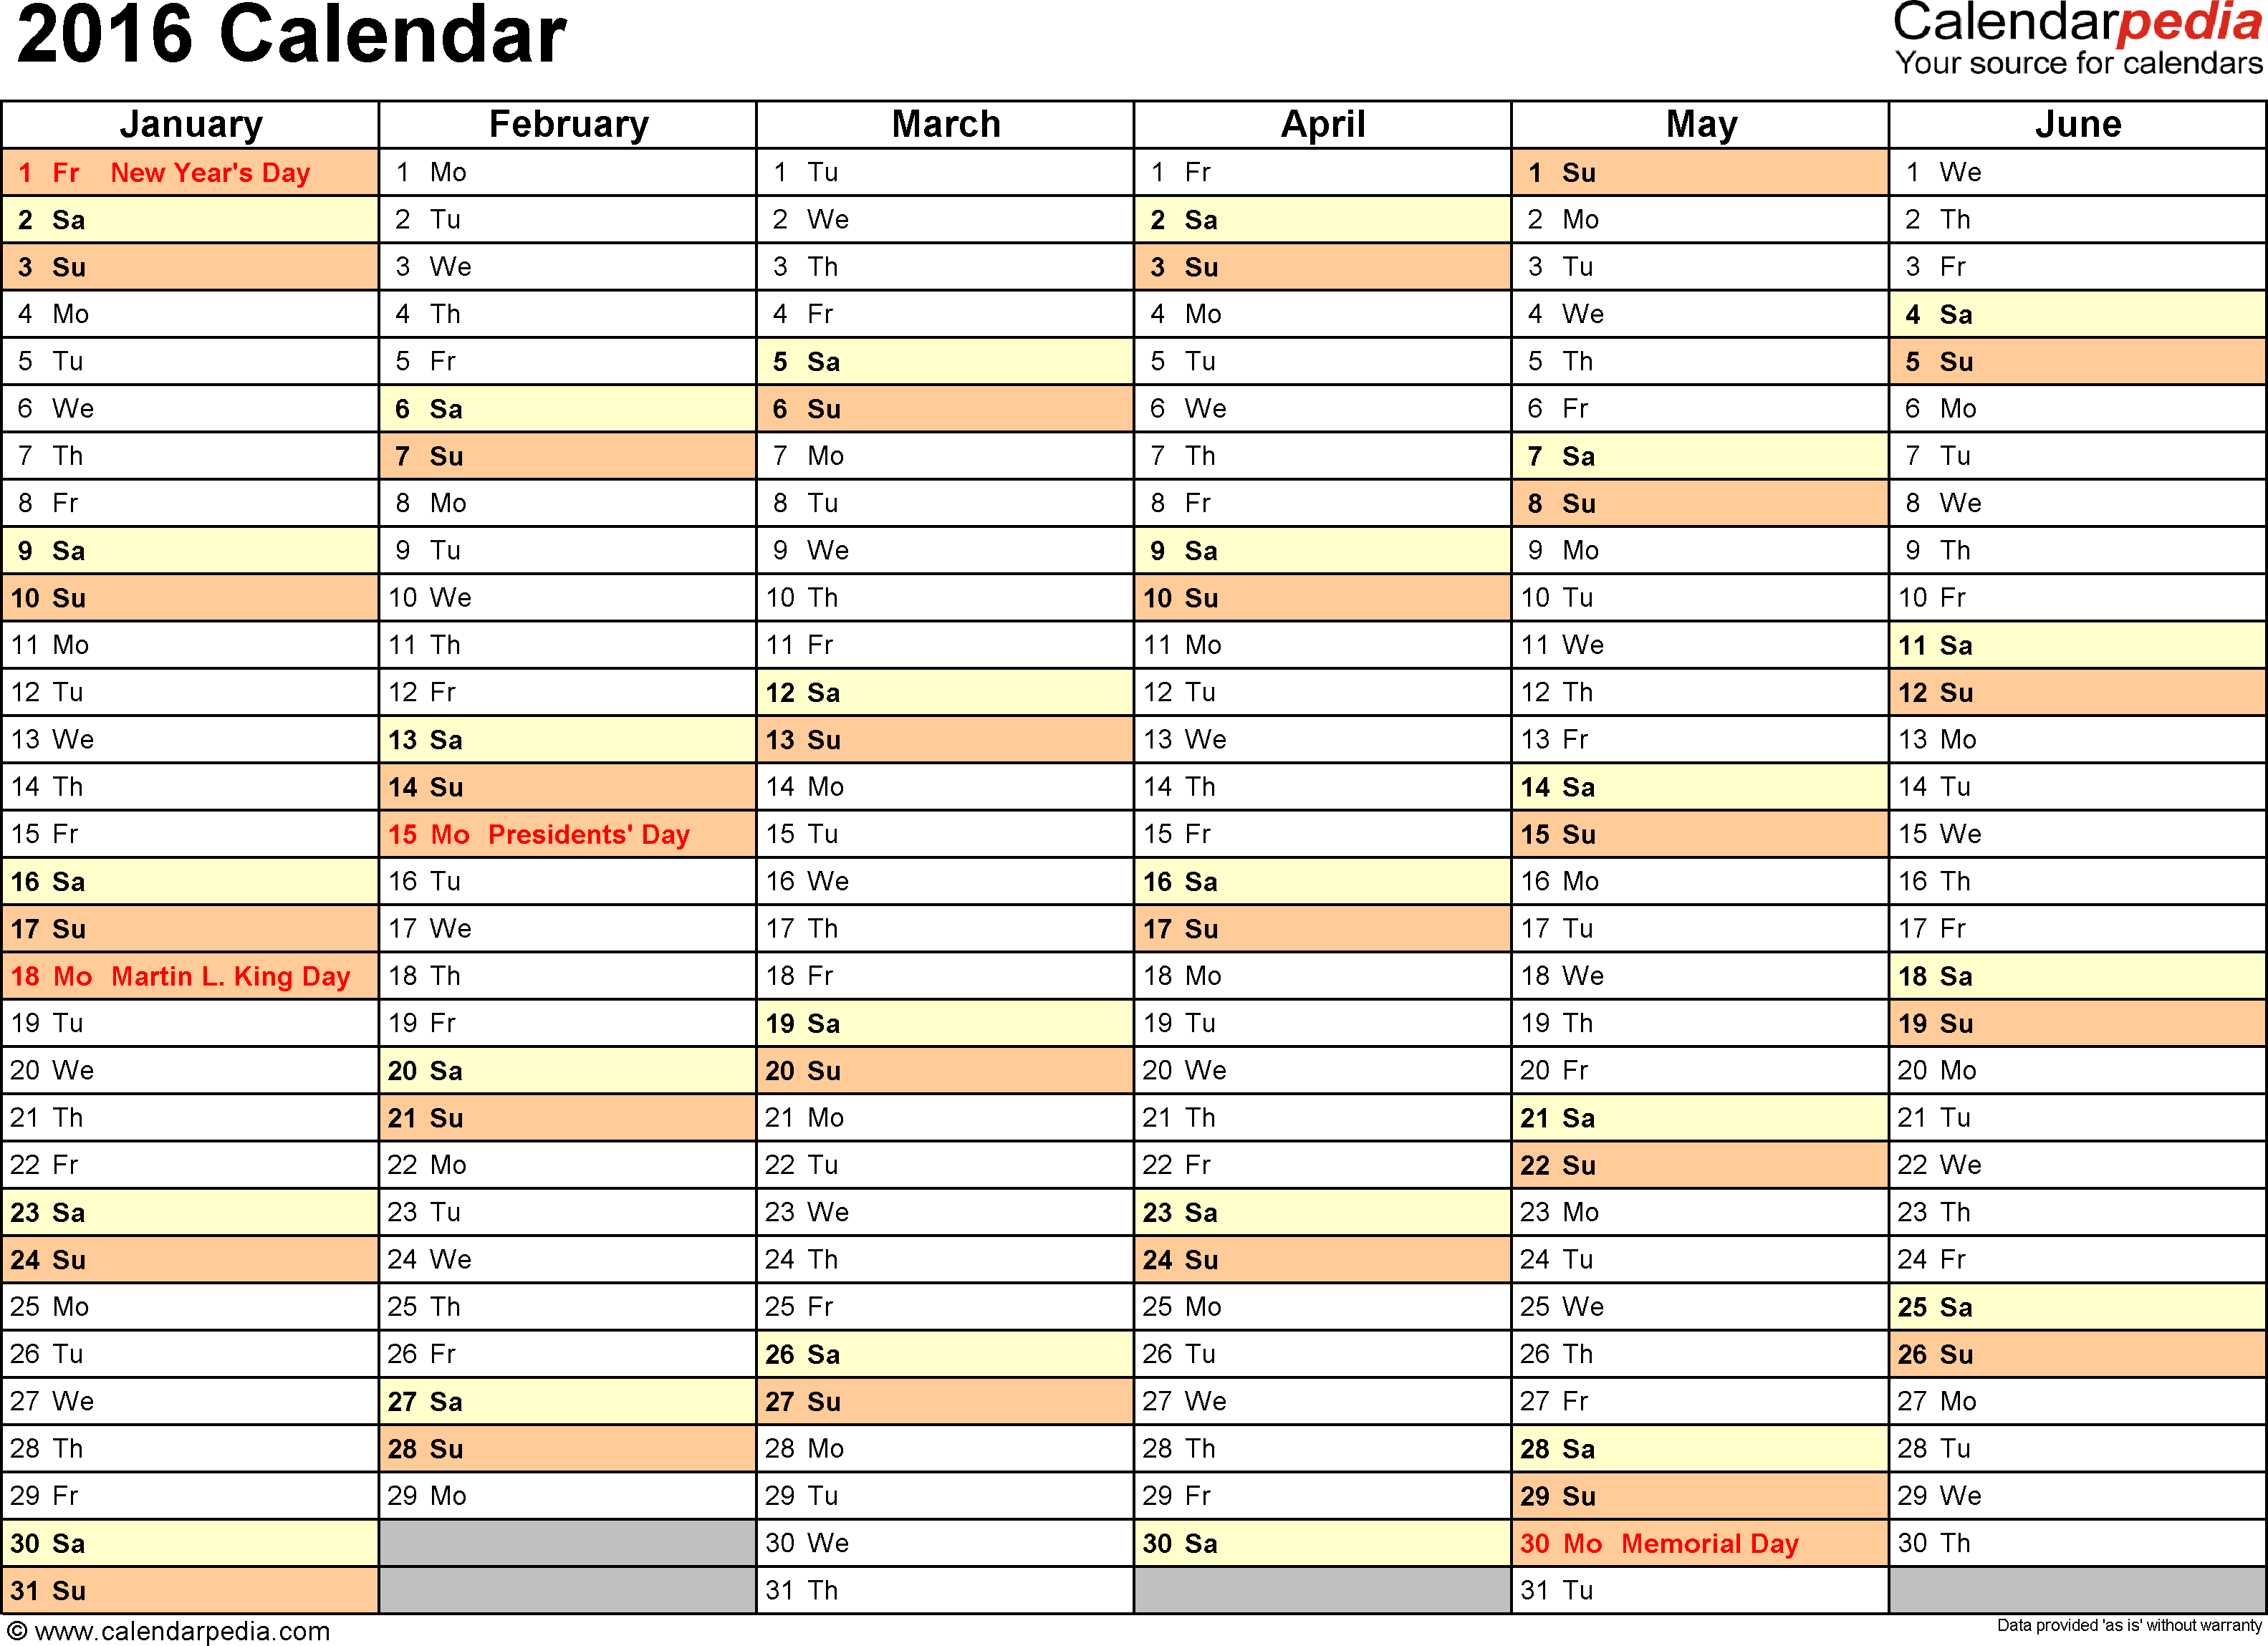 Ediblewildsus  Winning  Calendar  Download  Free Printable Excel Templates Xls With Handsome Template   Calendar For Excel Months Horizontally  Pages Landscape Orientation With Amazing Npv Excel Formula Also Excel Dance Studio In Addition Today Function Excel And Using Or In Excel As Well As Excel How To Delete Blank Rows Additionally Excel Vba Hide Columns From Calendarpediacom With Ediblewildsus  Handsome  Calendar  Download  Free Printable Excel Templates Xls With Amazing Template   Calendar For Excel Months Horizontally  Pages Landscape Orientation And Winning Npv Excel Formula Also Excel Dance Studio In Addition Today Function Excel From Calendarpediacom